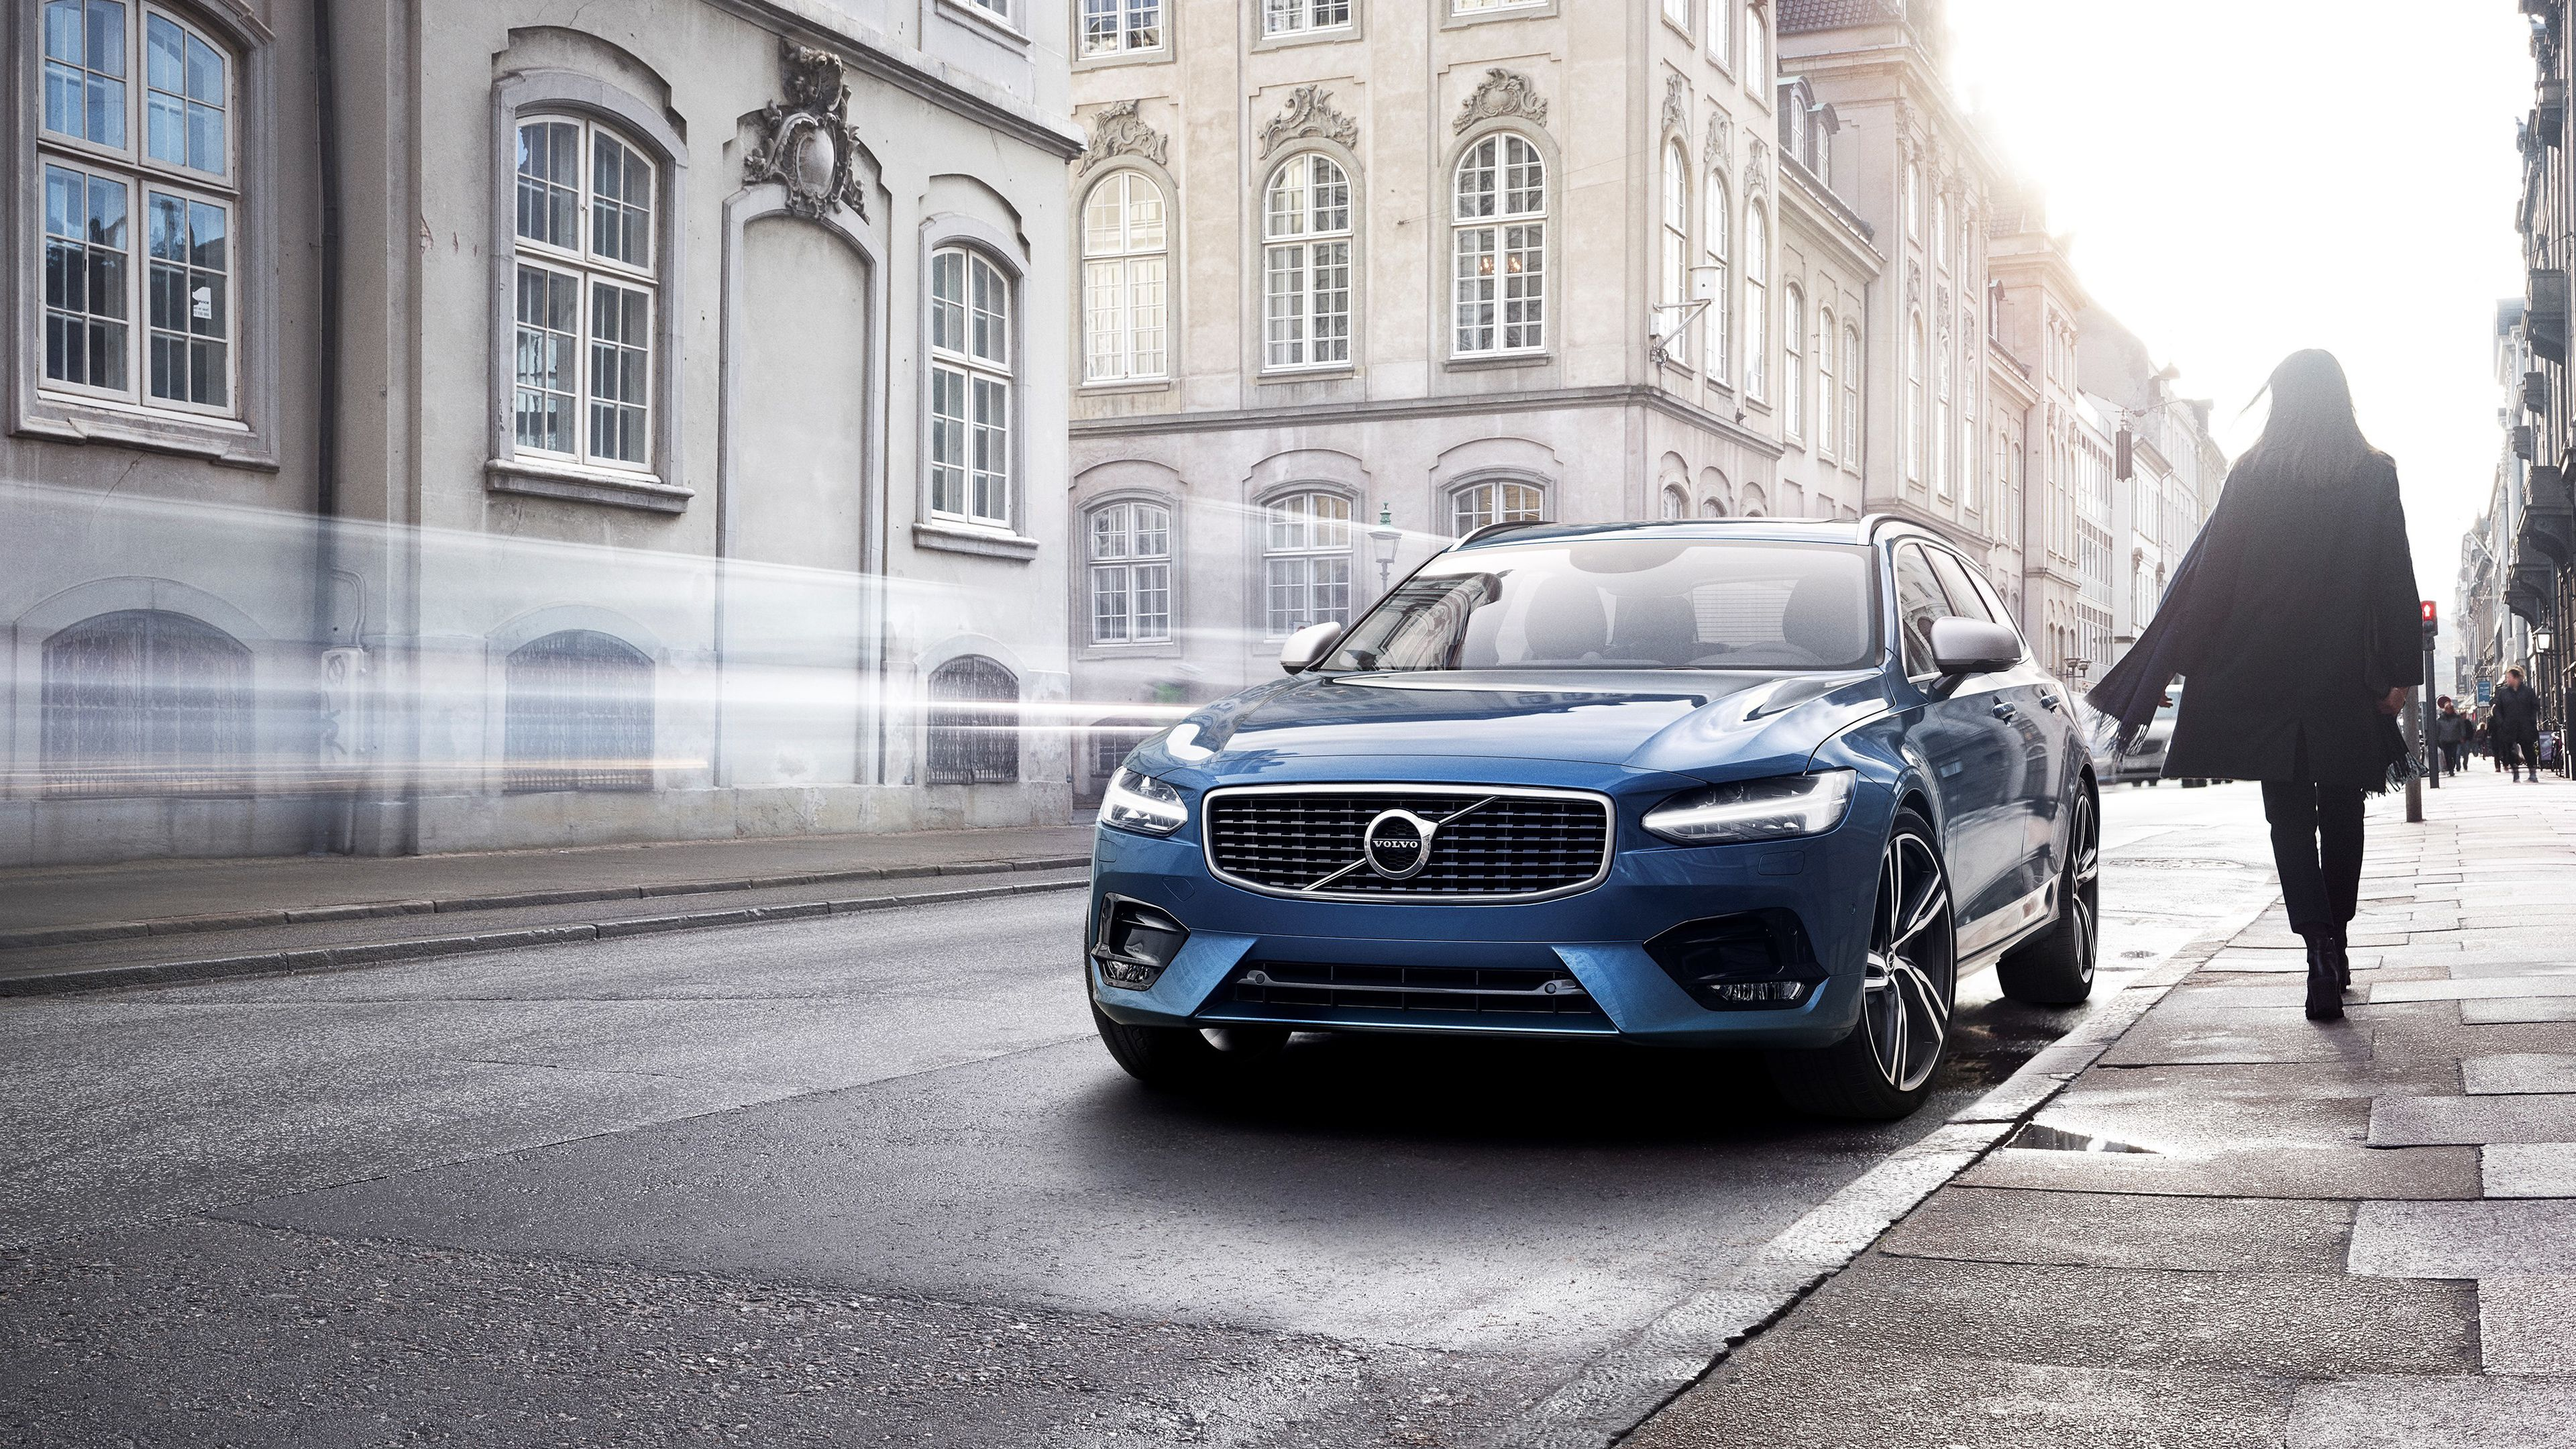 Volvo S90 Wallpapers 7